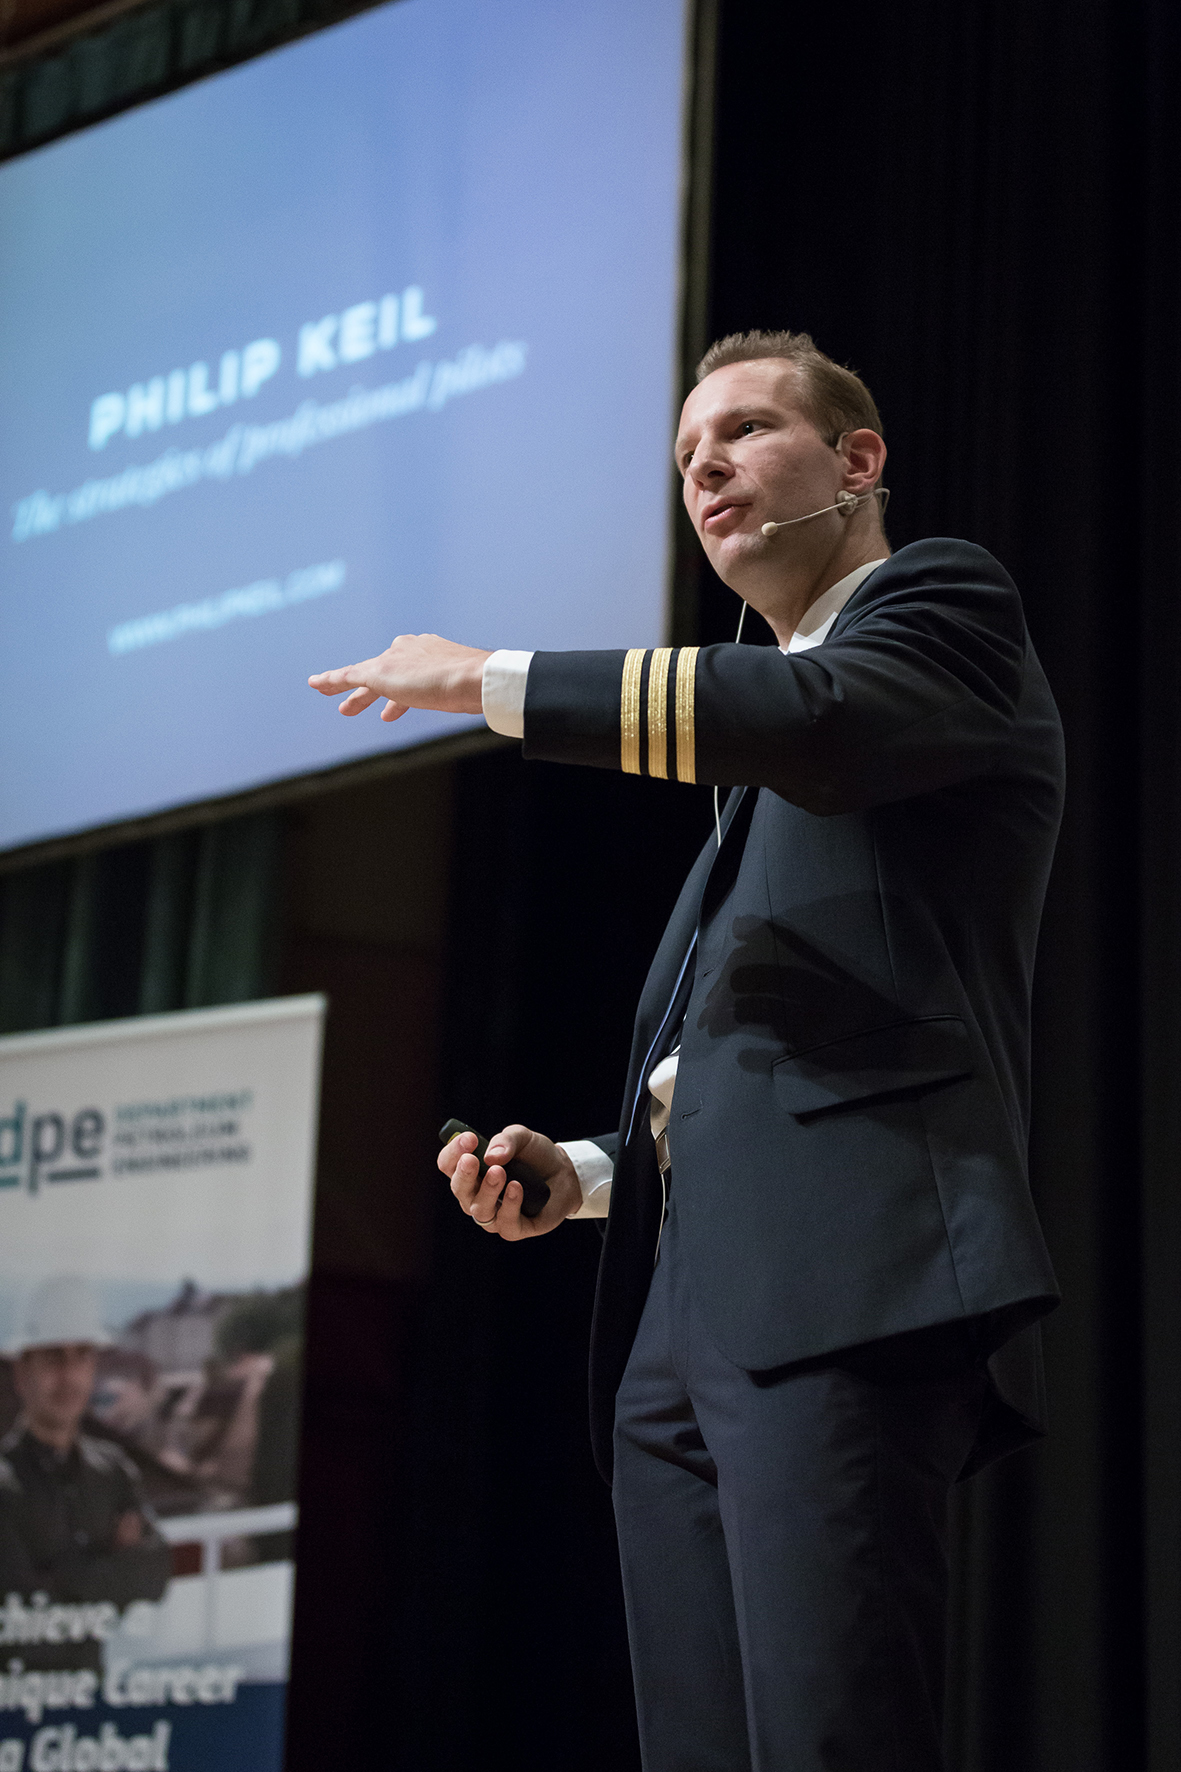 Philip Keil – professional pilot, speaker, author